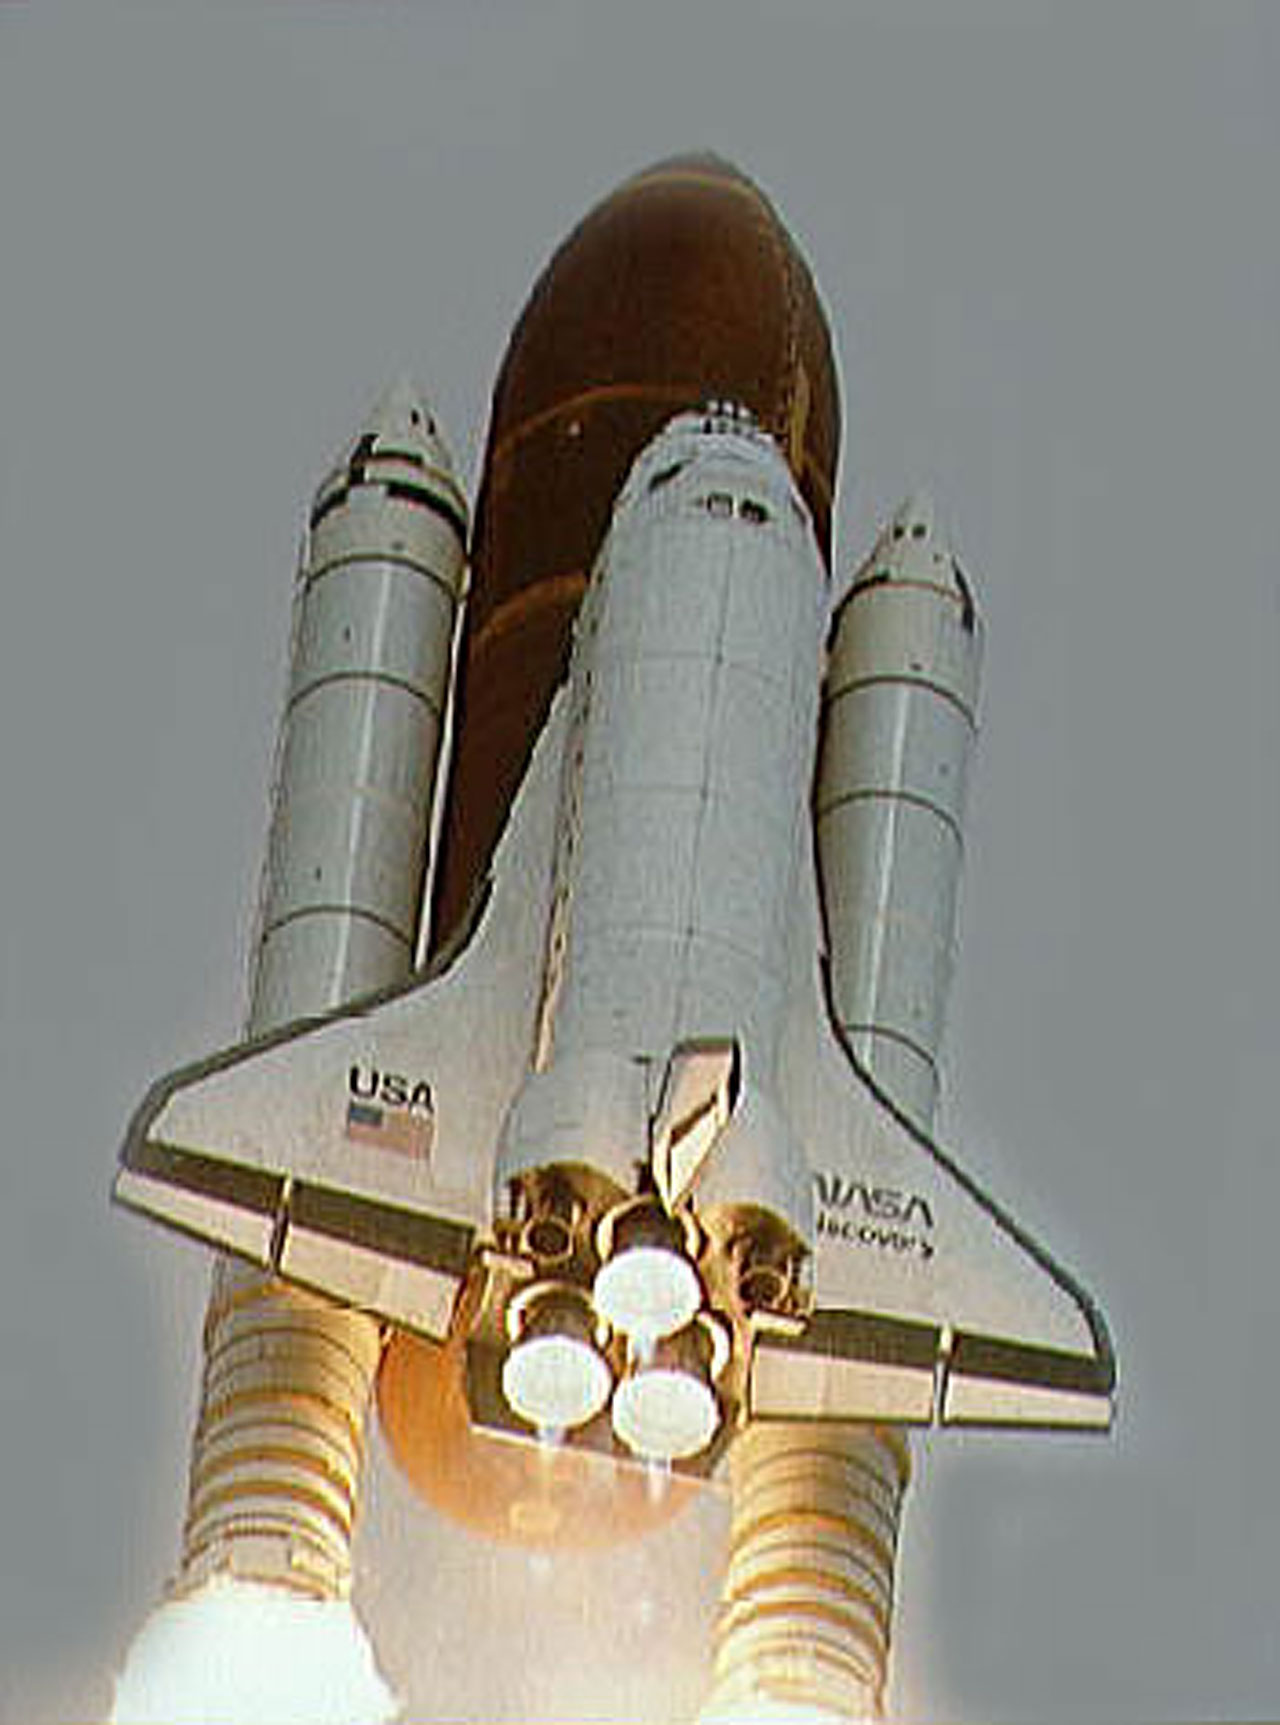 space shuttle hubble - photo #17